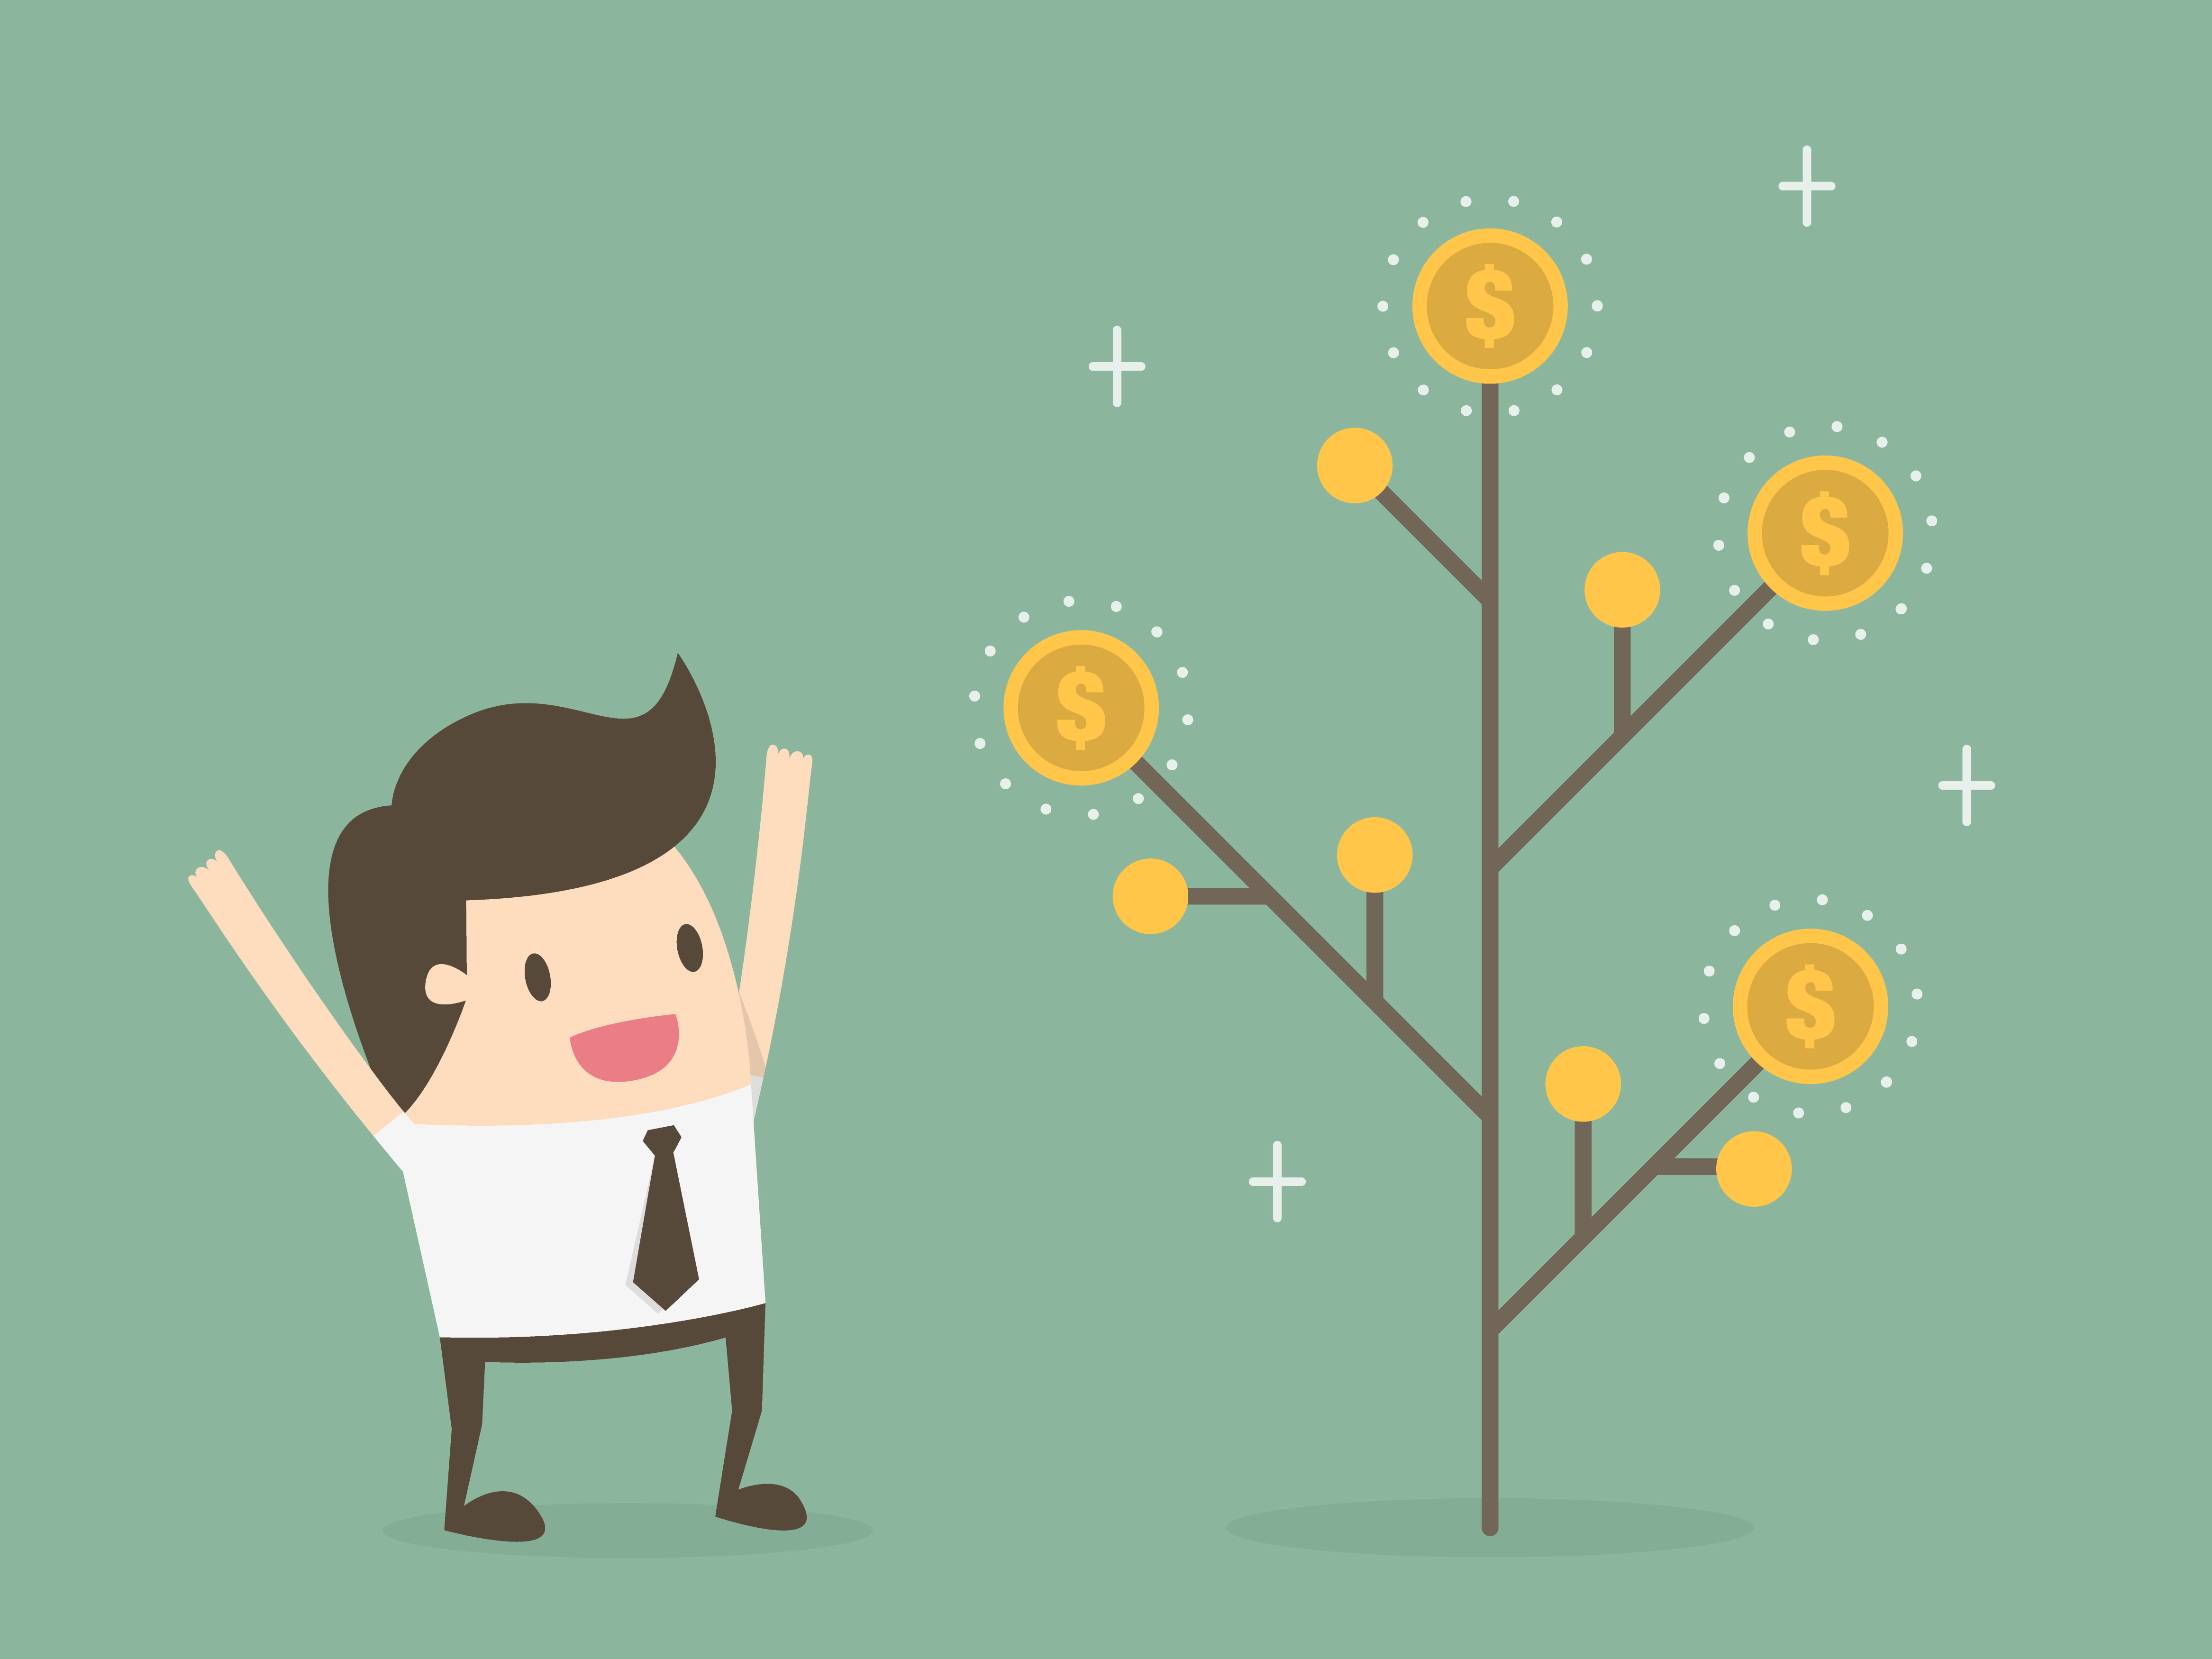 Man Excited About Growing Money Tree Download Free Vectors Clipart Graphics Vector Art 3d model of plant and tree,flora organisms 3d model files and 3d objects free download,such as flowers,trees,bamboo,grass,bushes,creepers,potted plant,artificial houseplant. vecteezy